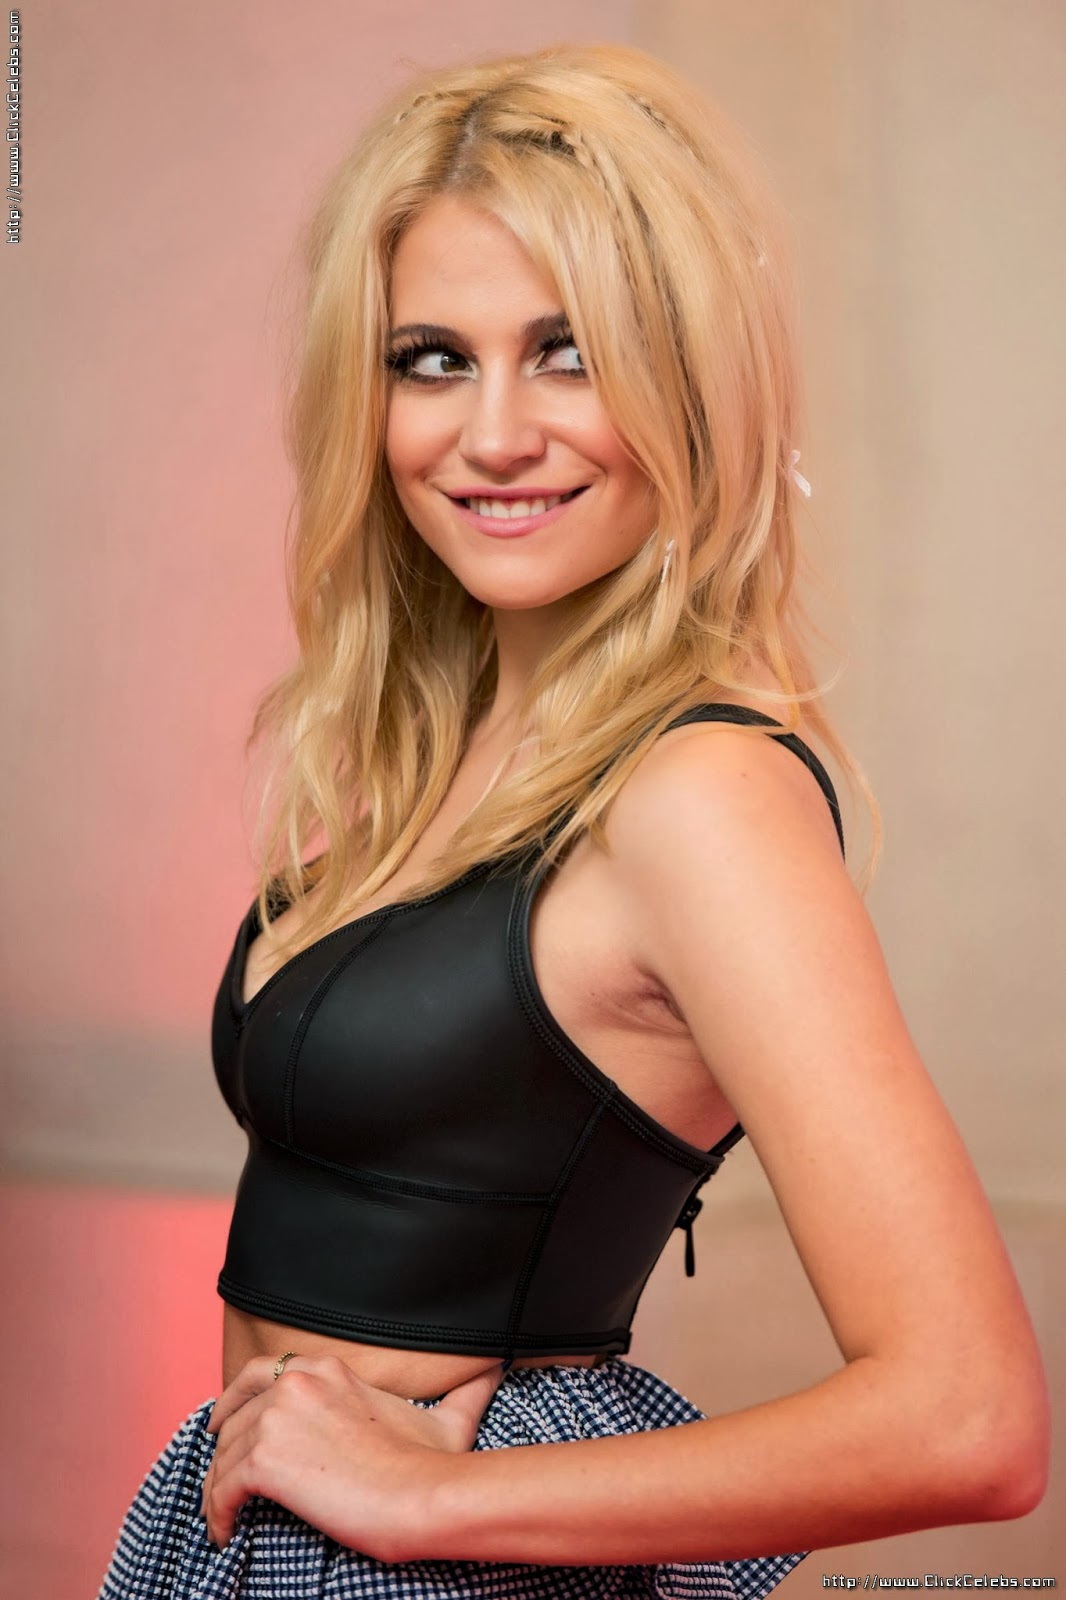 Pixie Lott nudes (86 photo), cleavage Sexy, Snapchat, bra 2020